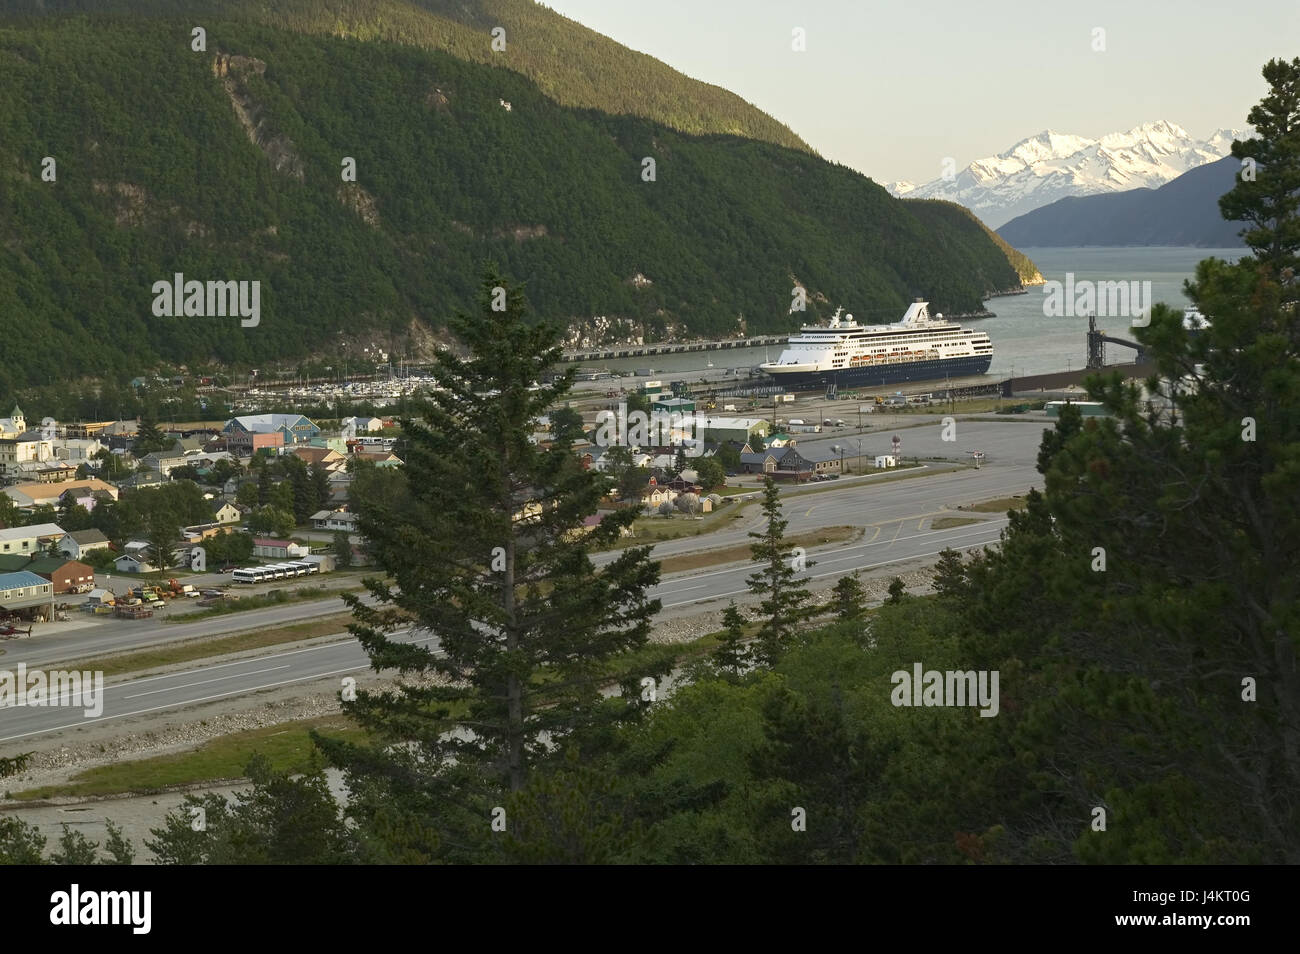 The USA, Alaska, Skagway, local view, harbour, cruise ship, Taiya Inlet North America, the United States of America, - Stock Image